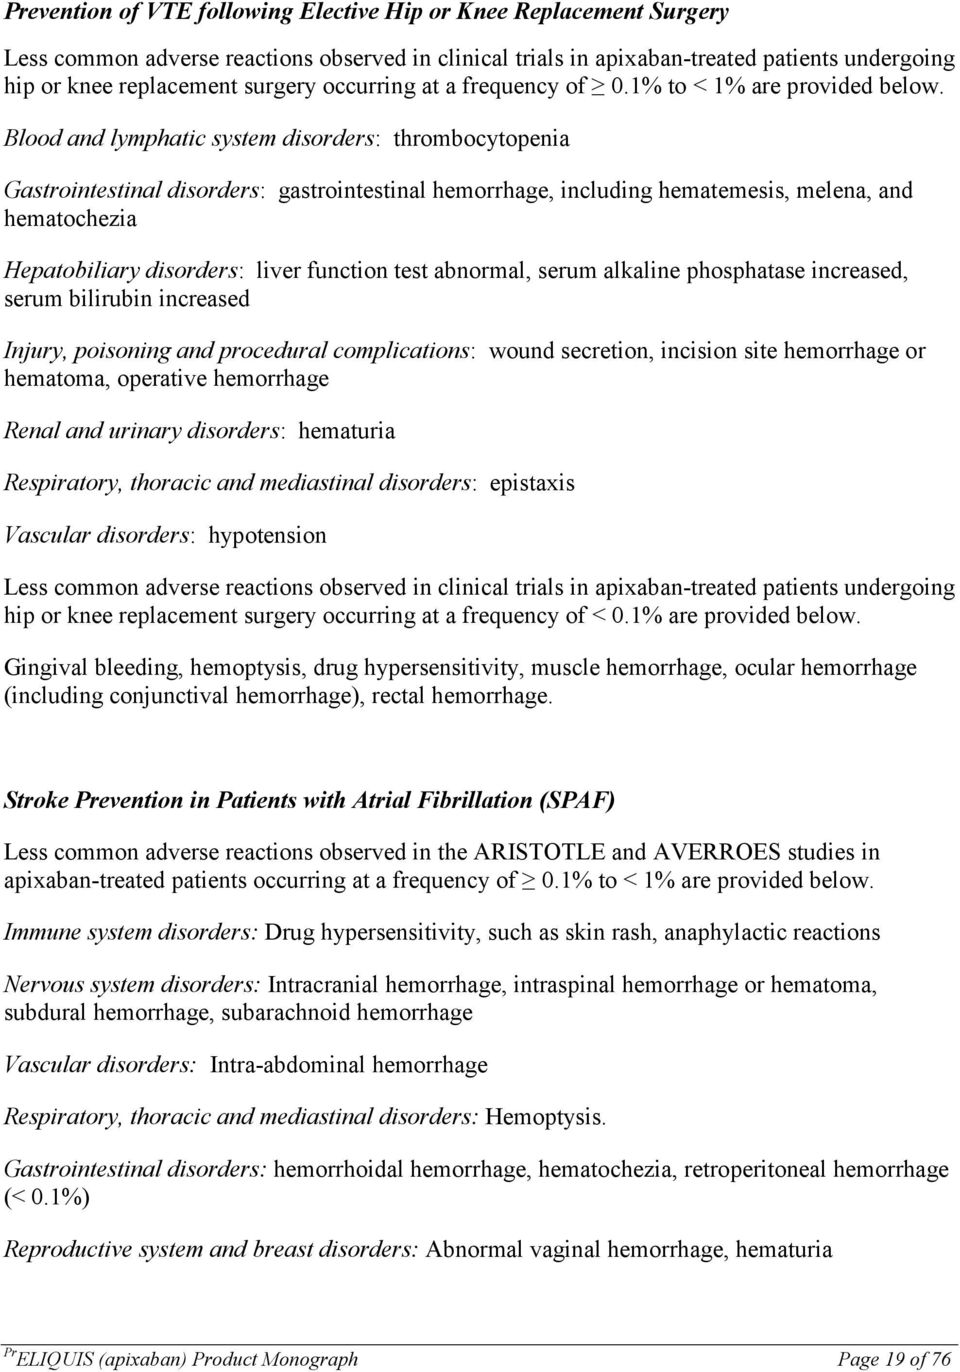 Blood and lymphatic system disorders: thrombocytopenia Gastrointestinal disorders: gastrointestinal hemorrhage, including hematemesis, melena, and hematochezia Hepatobiliary disorders: liver function